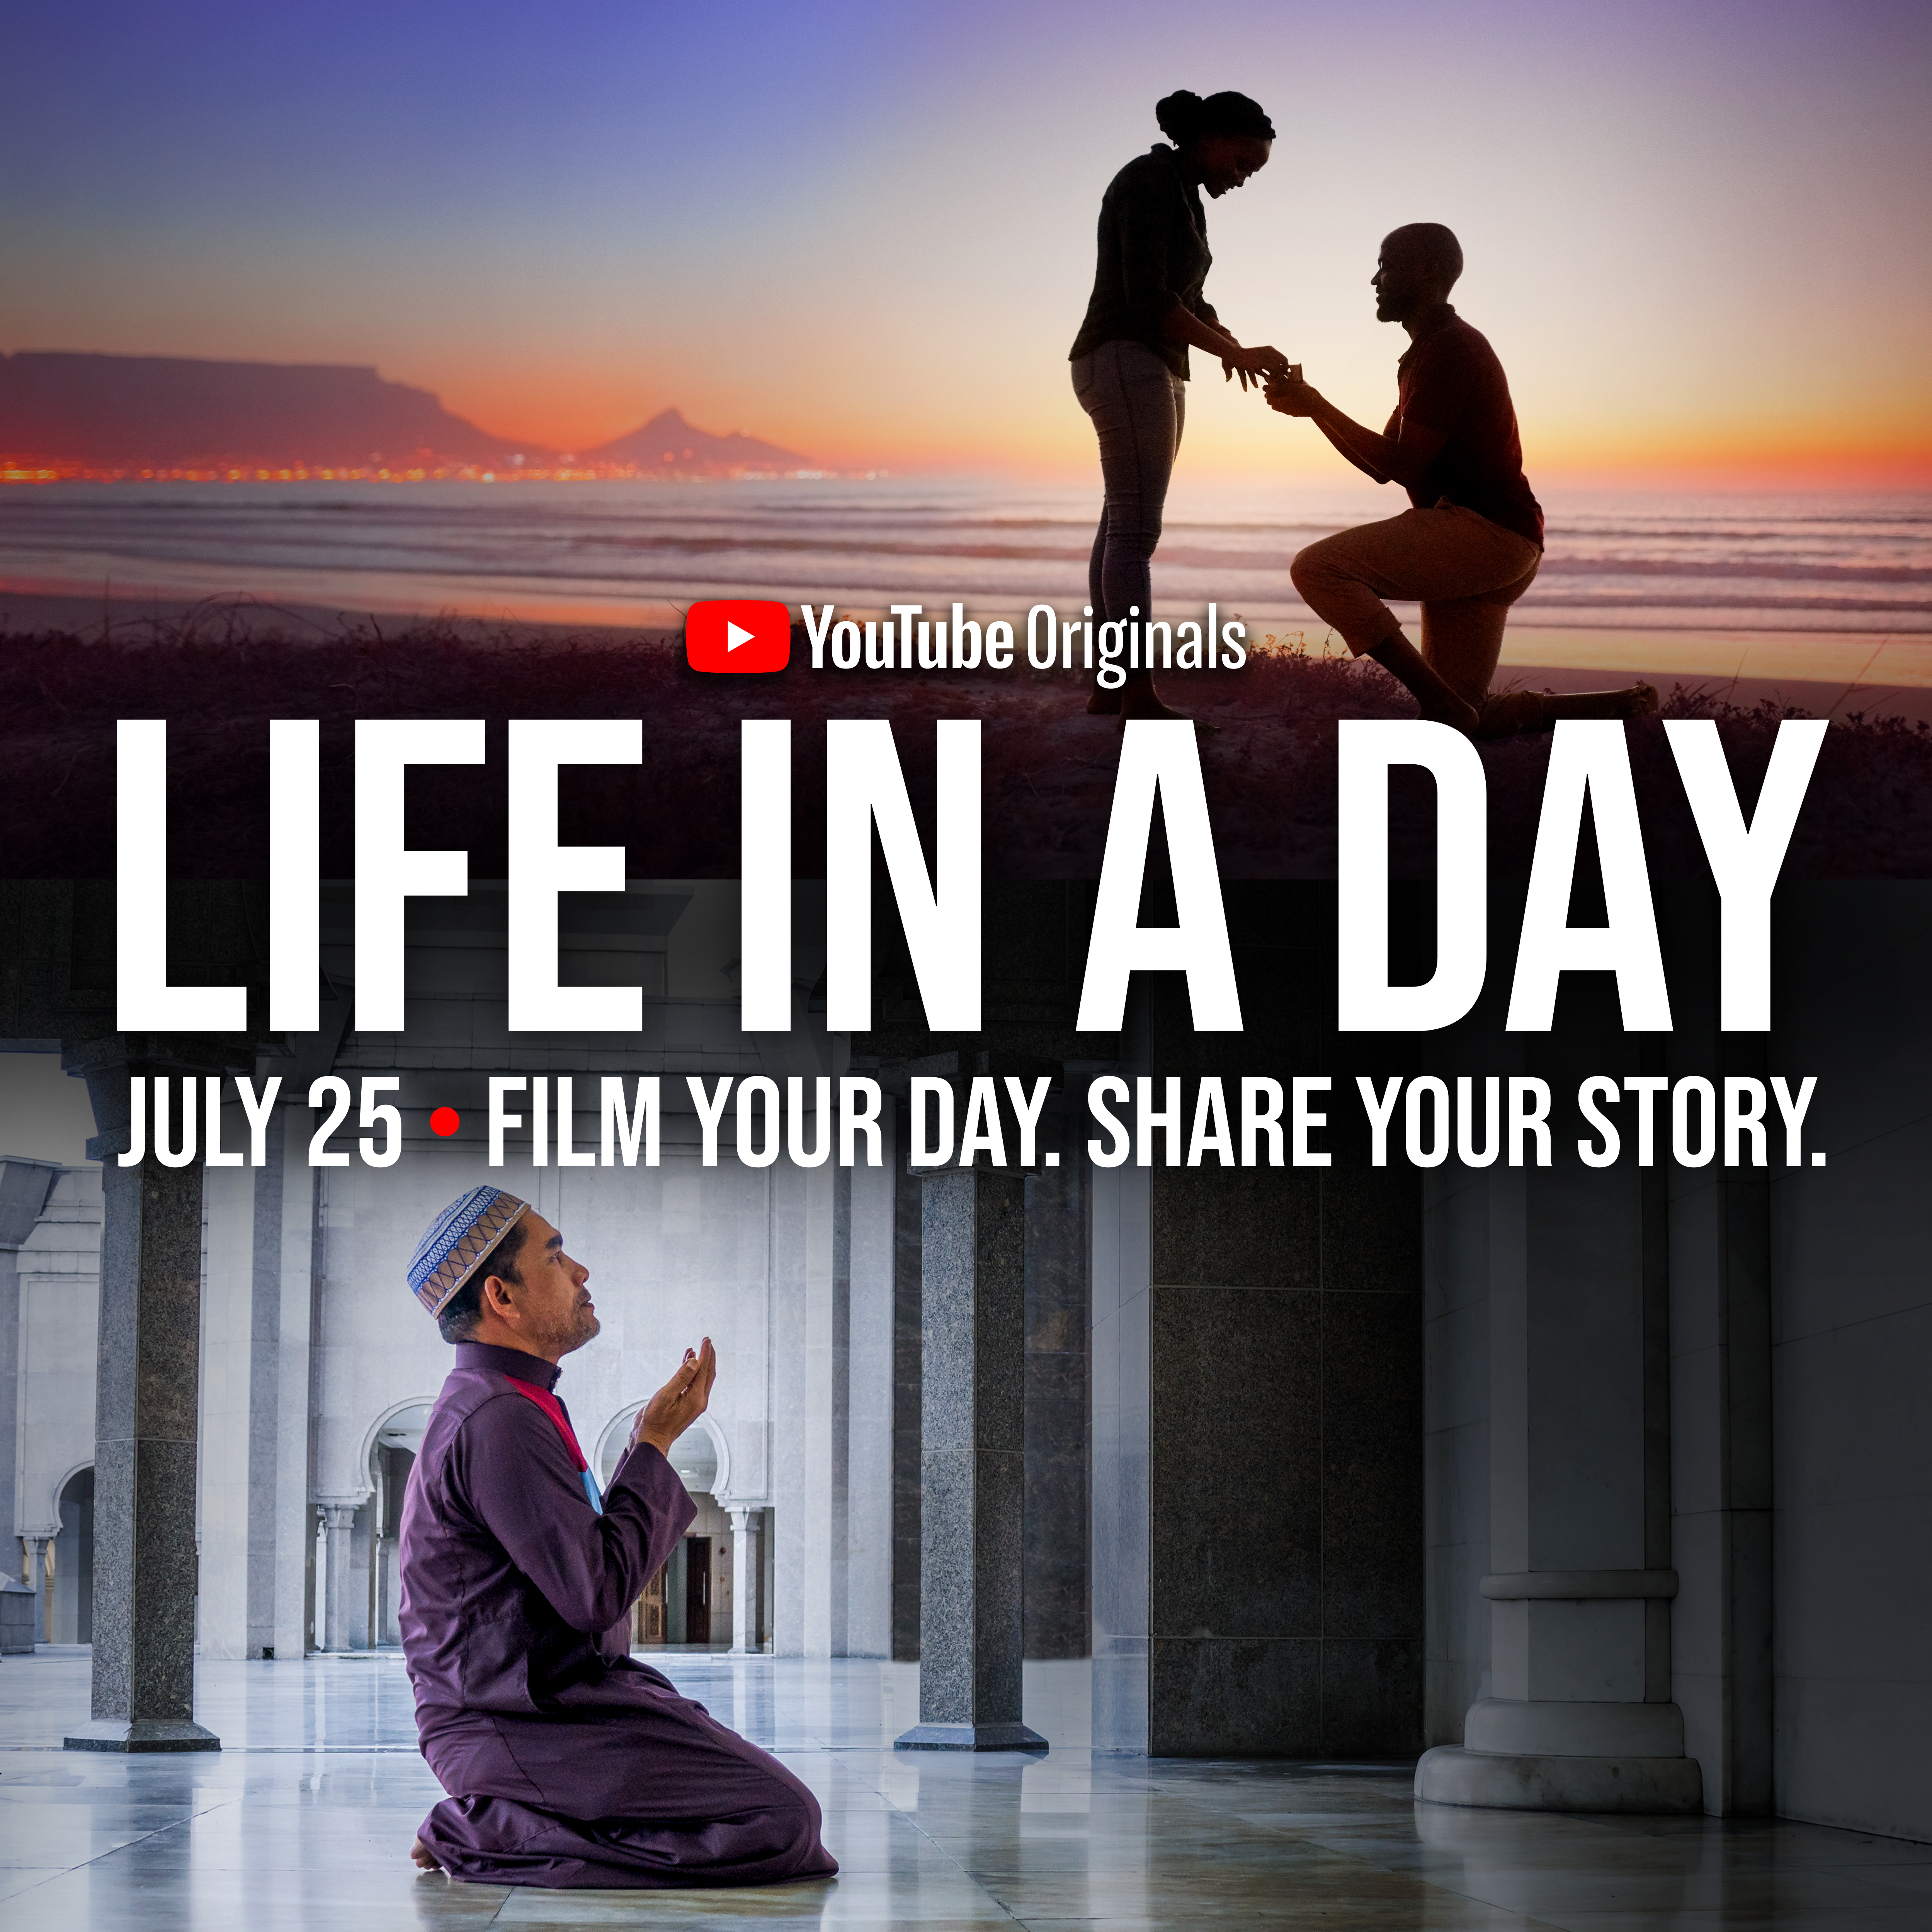 Update: Thank you for participating in 'Life In A Day 2020'